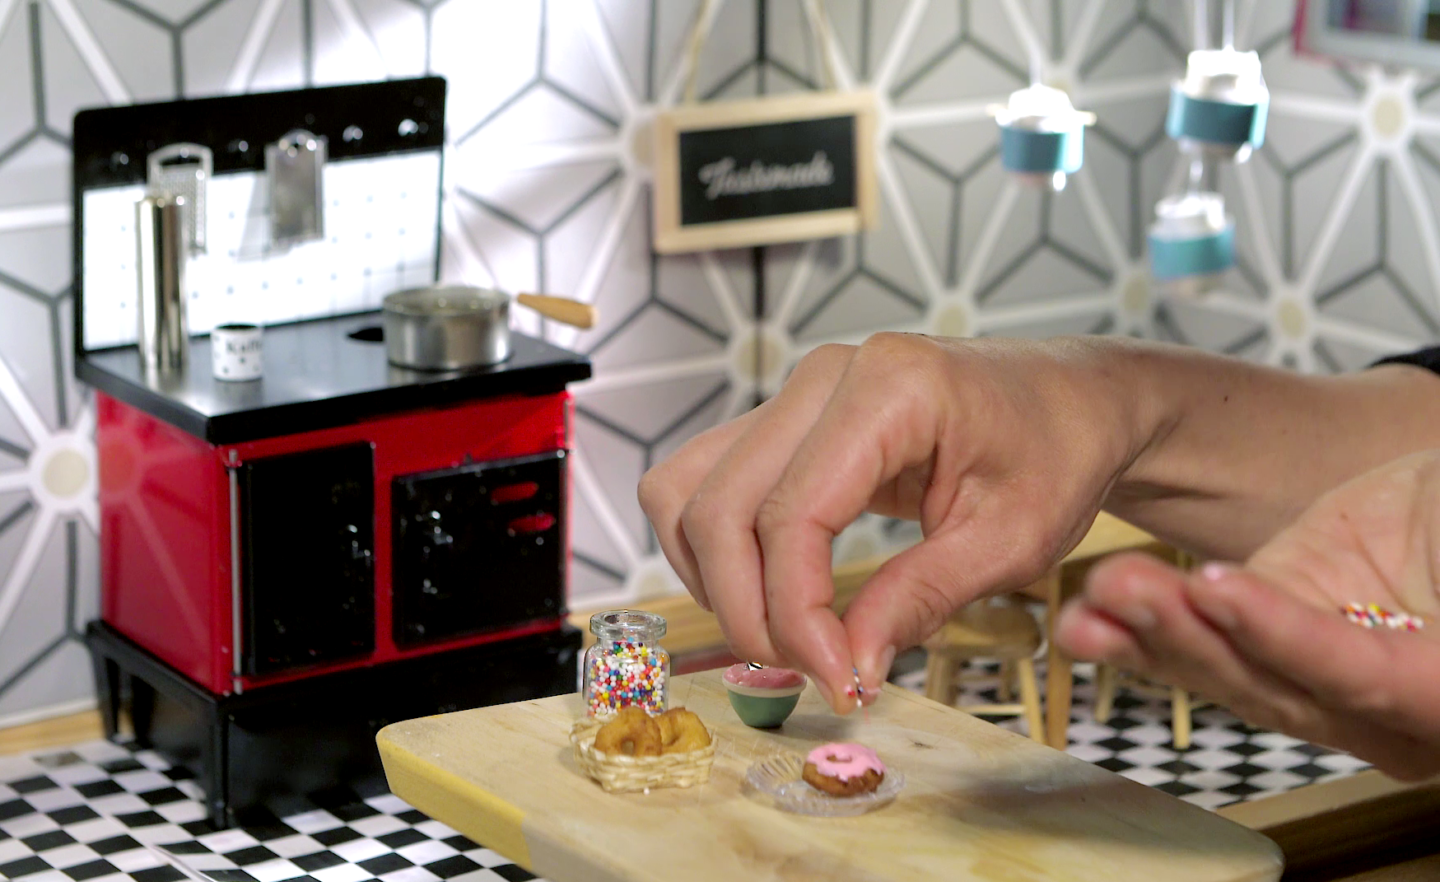 'Tiny Kitchen' Videos Cook Up Real Food In Doll-Sized Portions